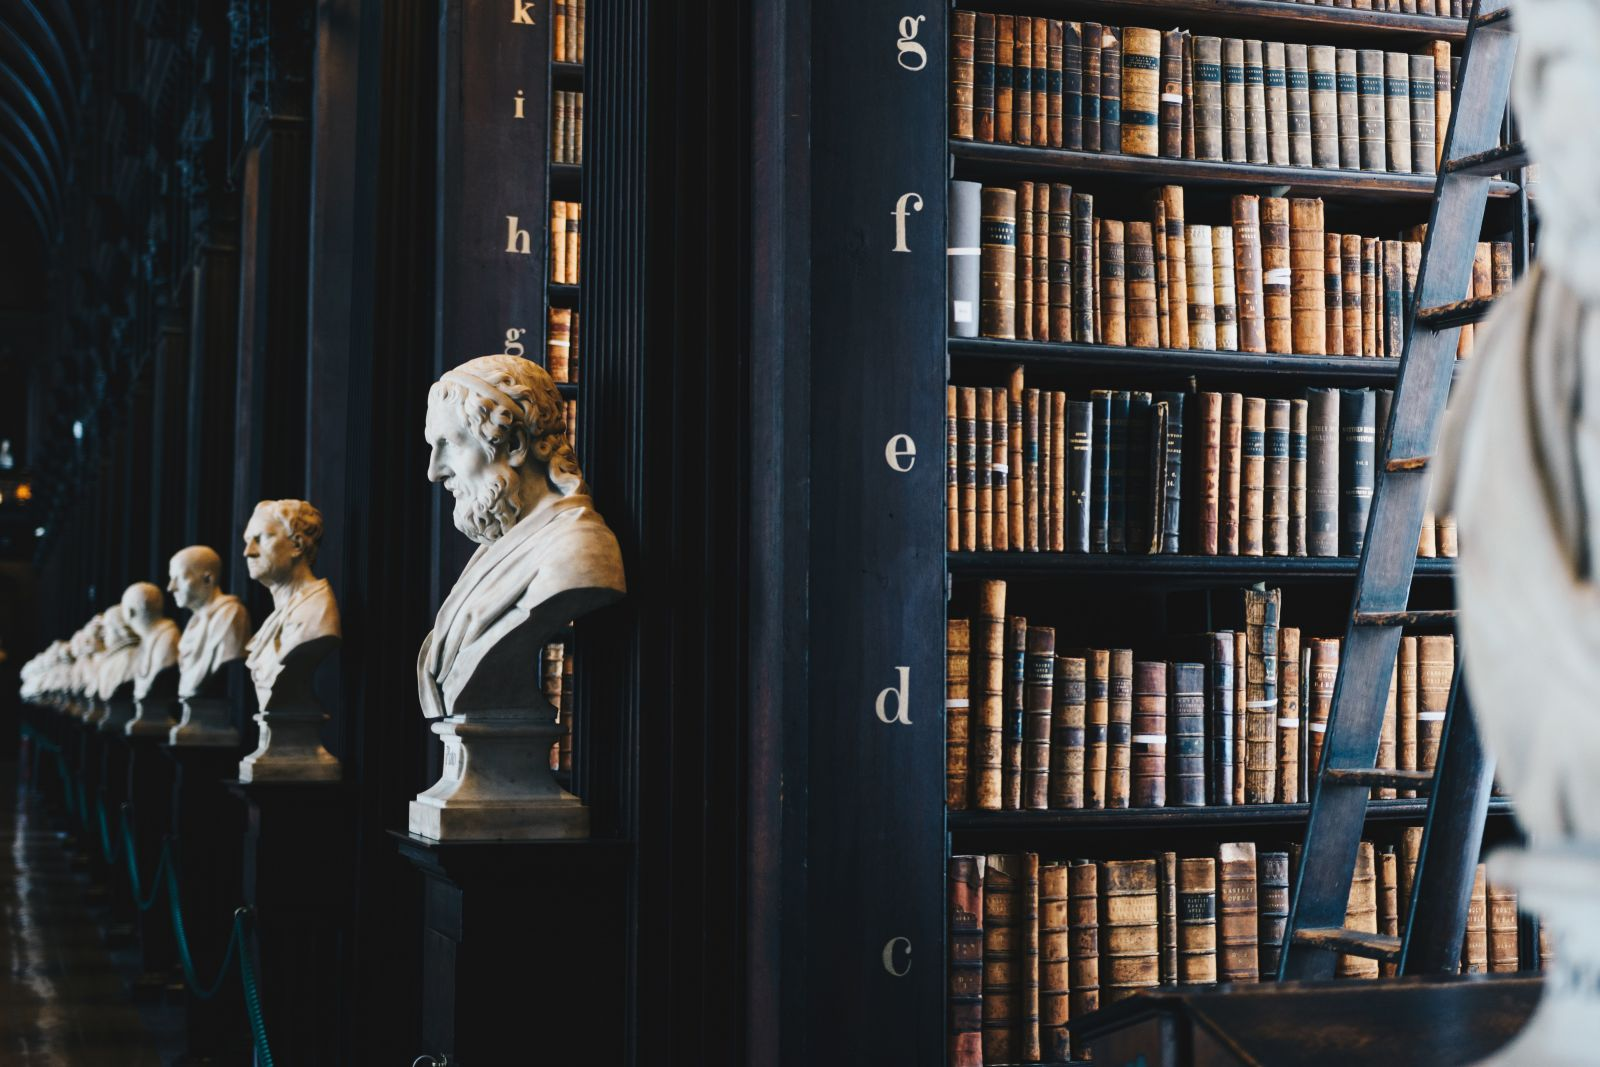 llb, jd or llm? choosing a law degree | courses | student world online